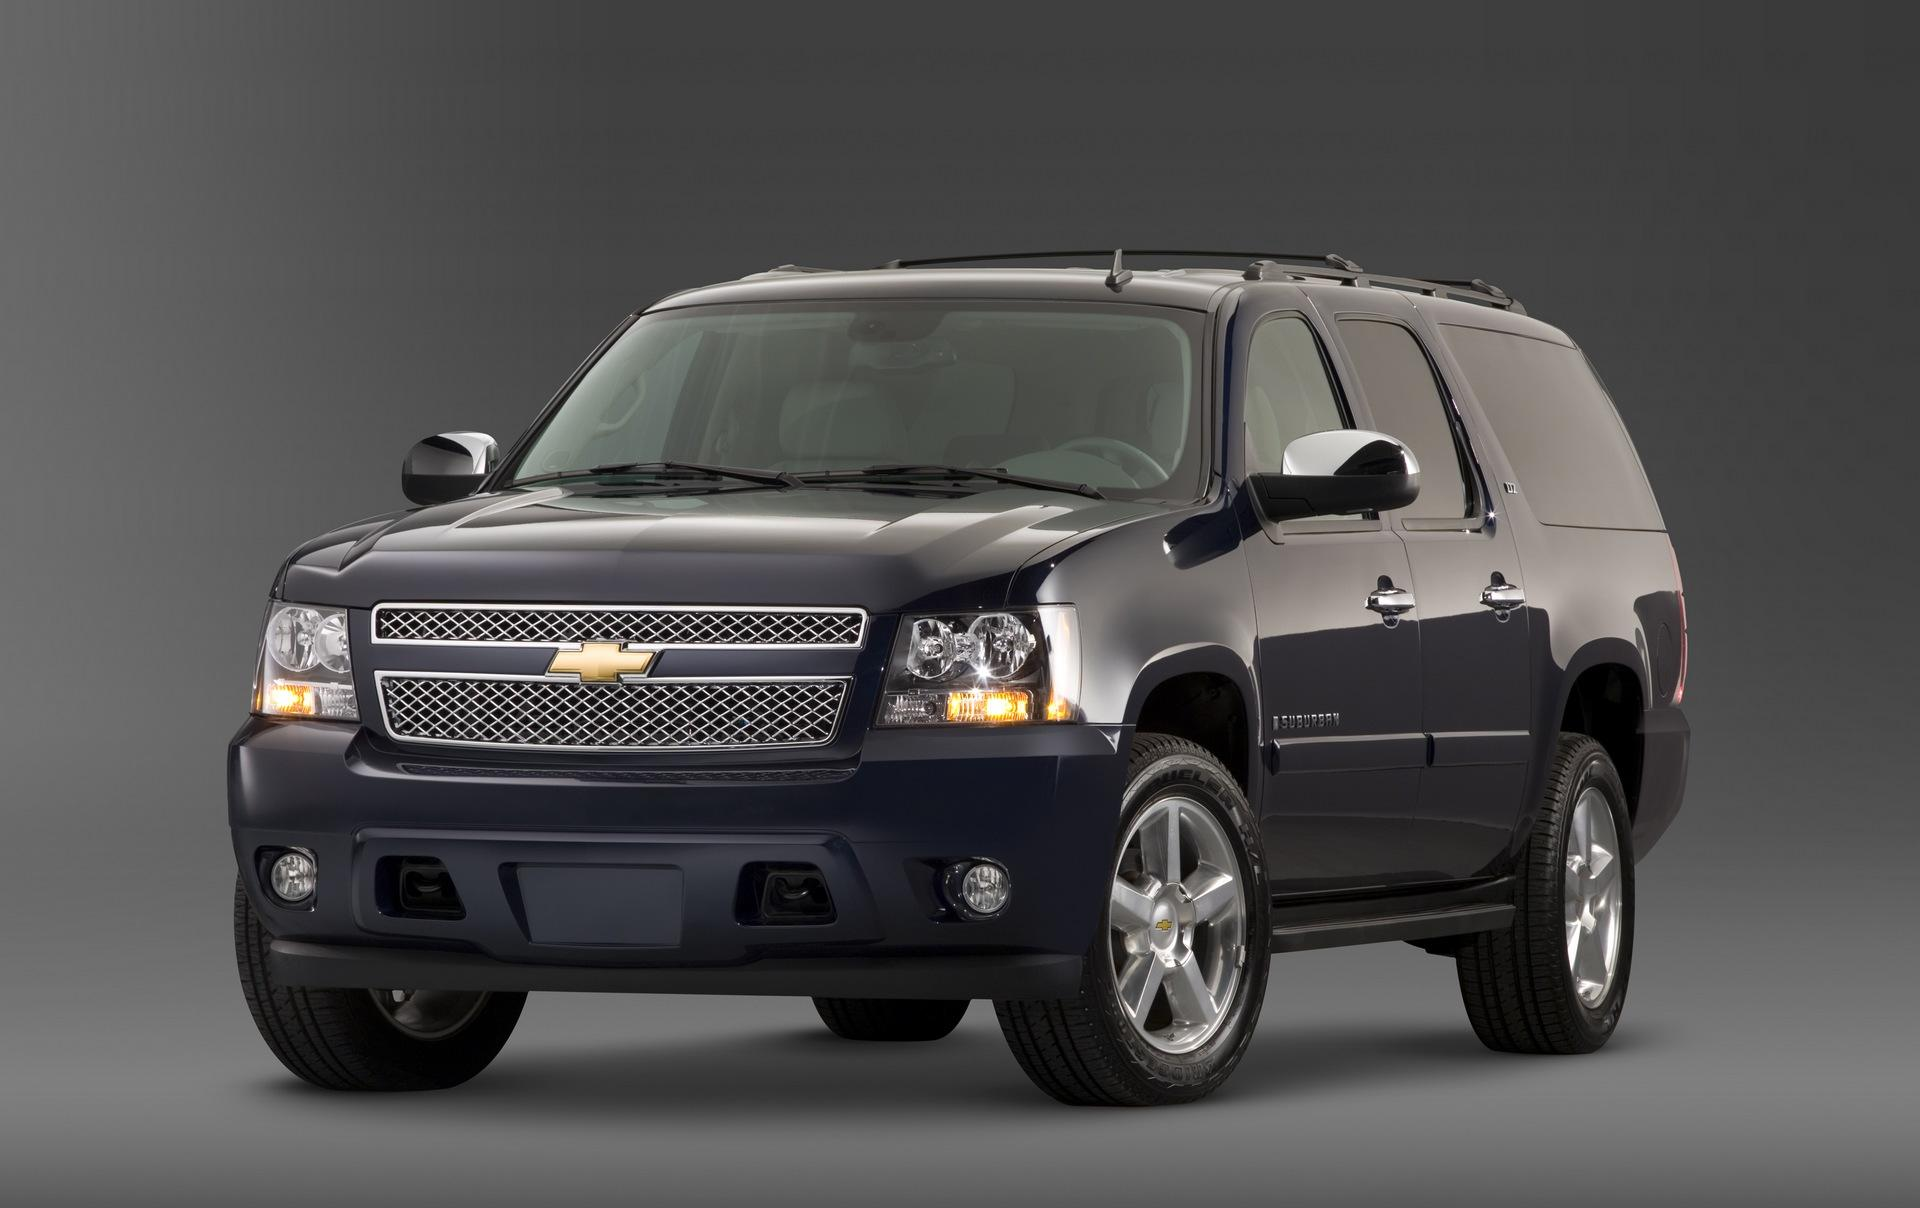 2008 chevrolet suburban. Black Bedroom Furniture Sets. Home Design Ideas